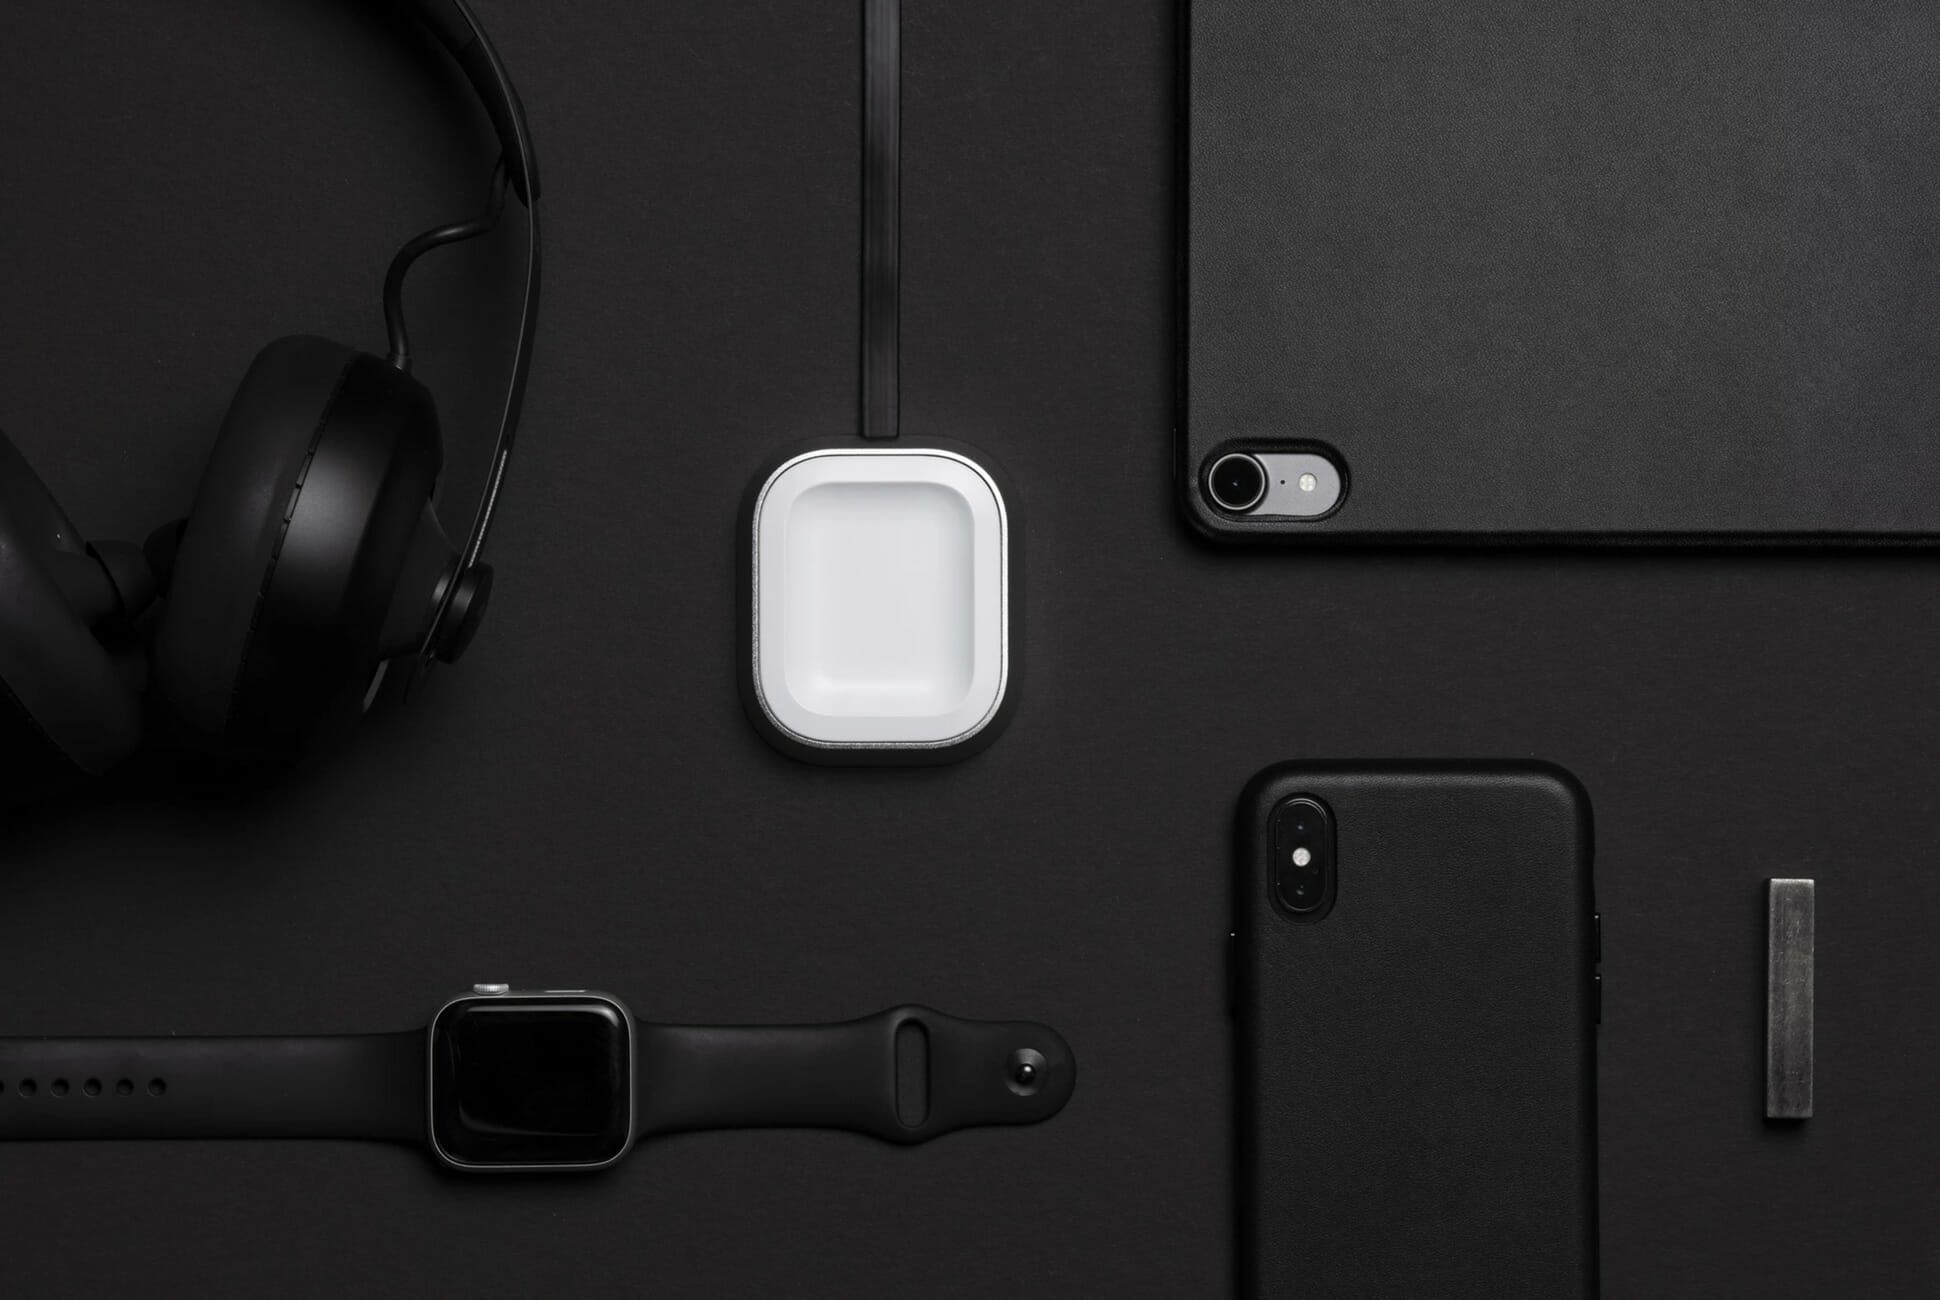 Airpods-Charger-Gear-Patrol-Slide-1